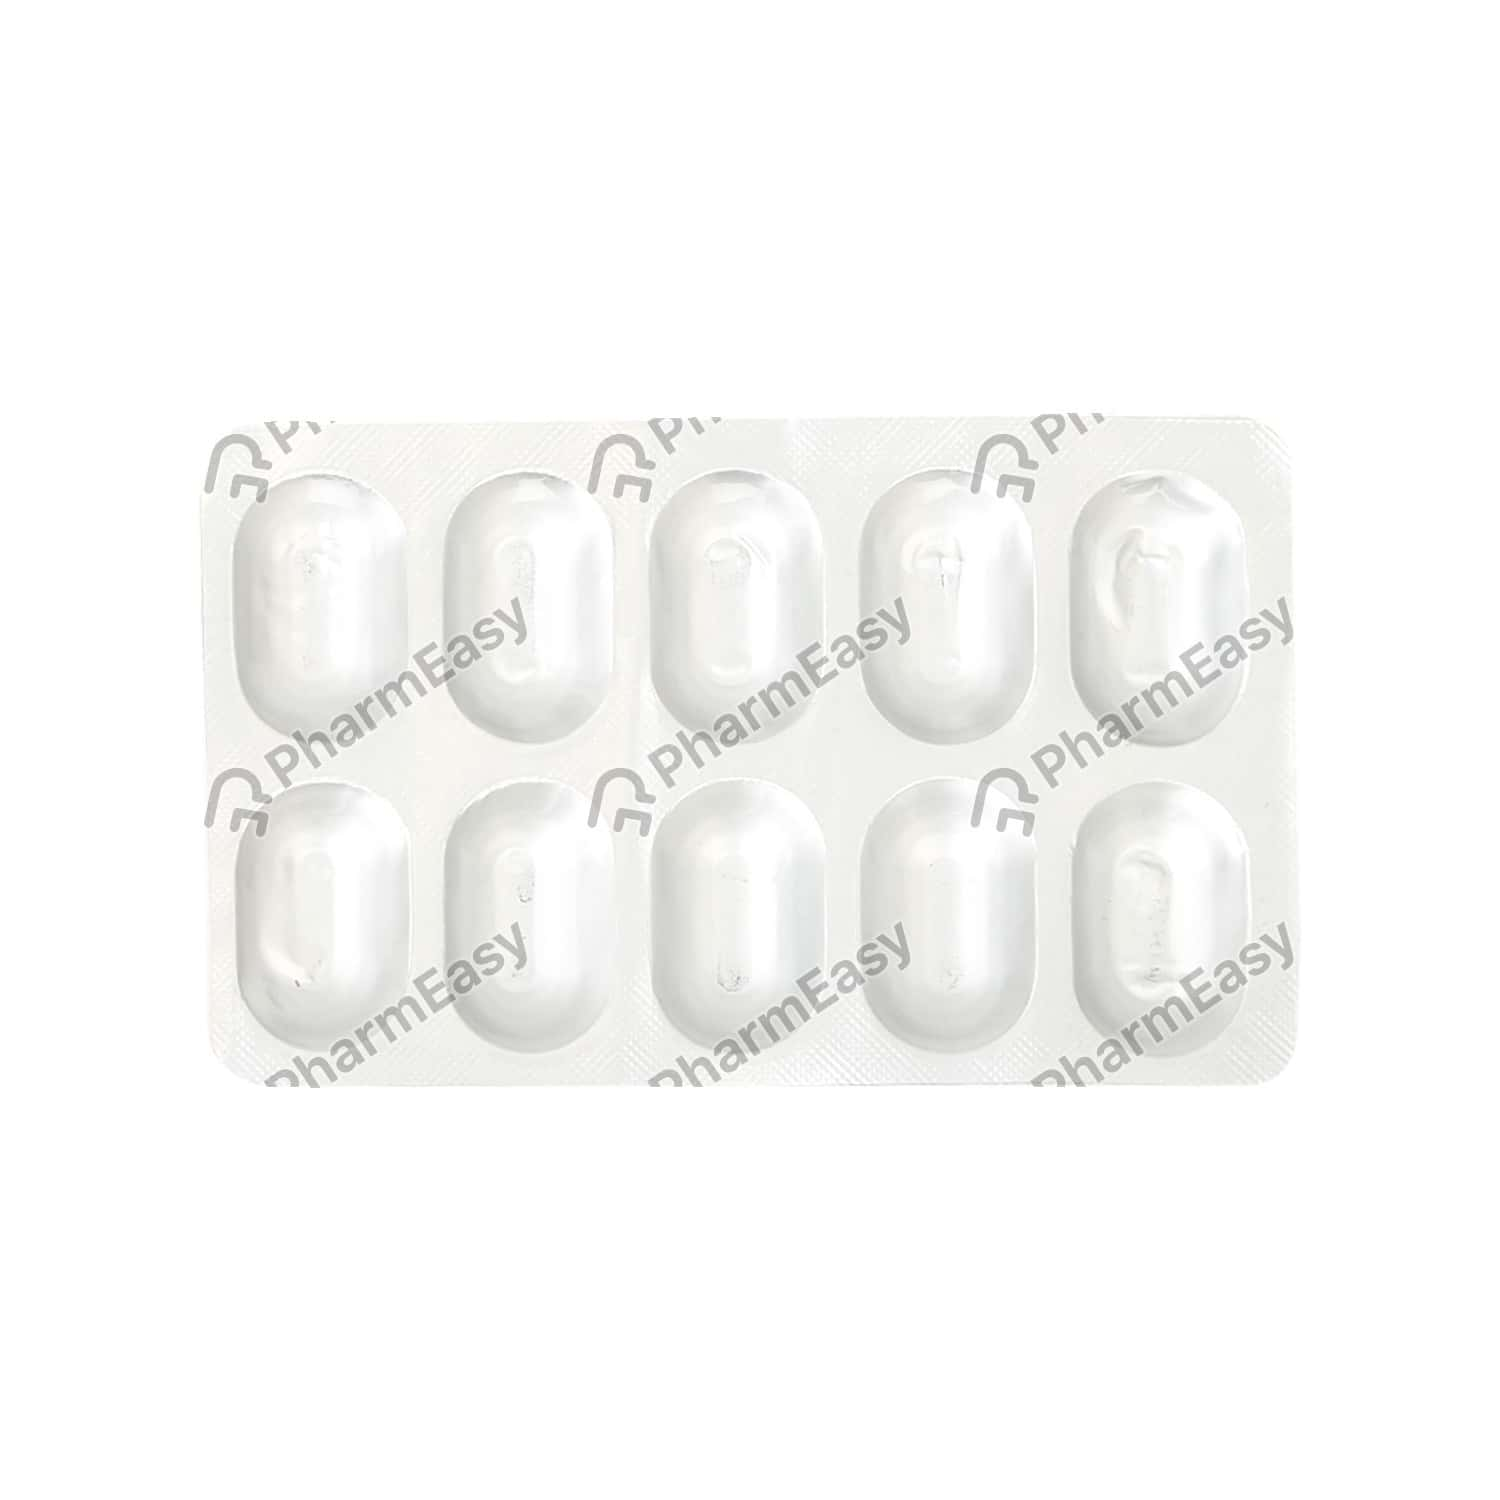 Parnacal Hd Strip Of 10 Tablets